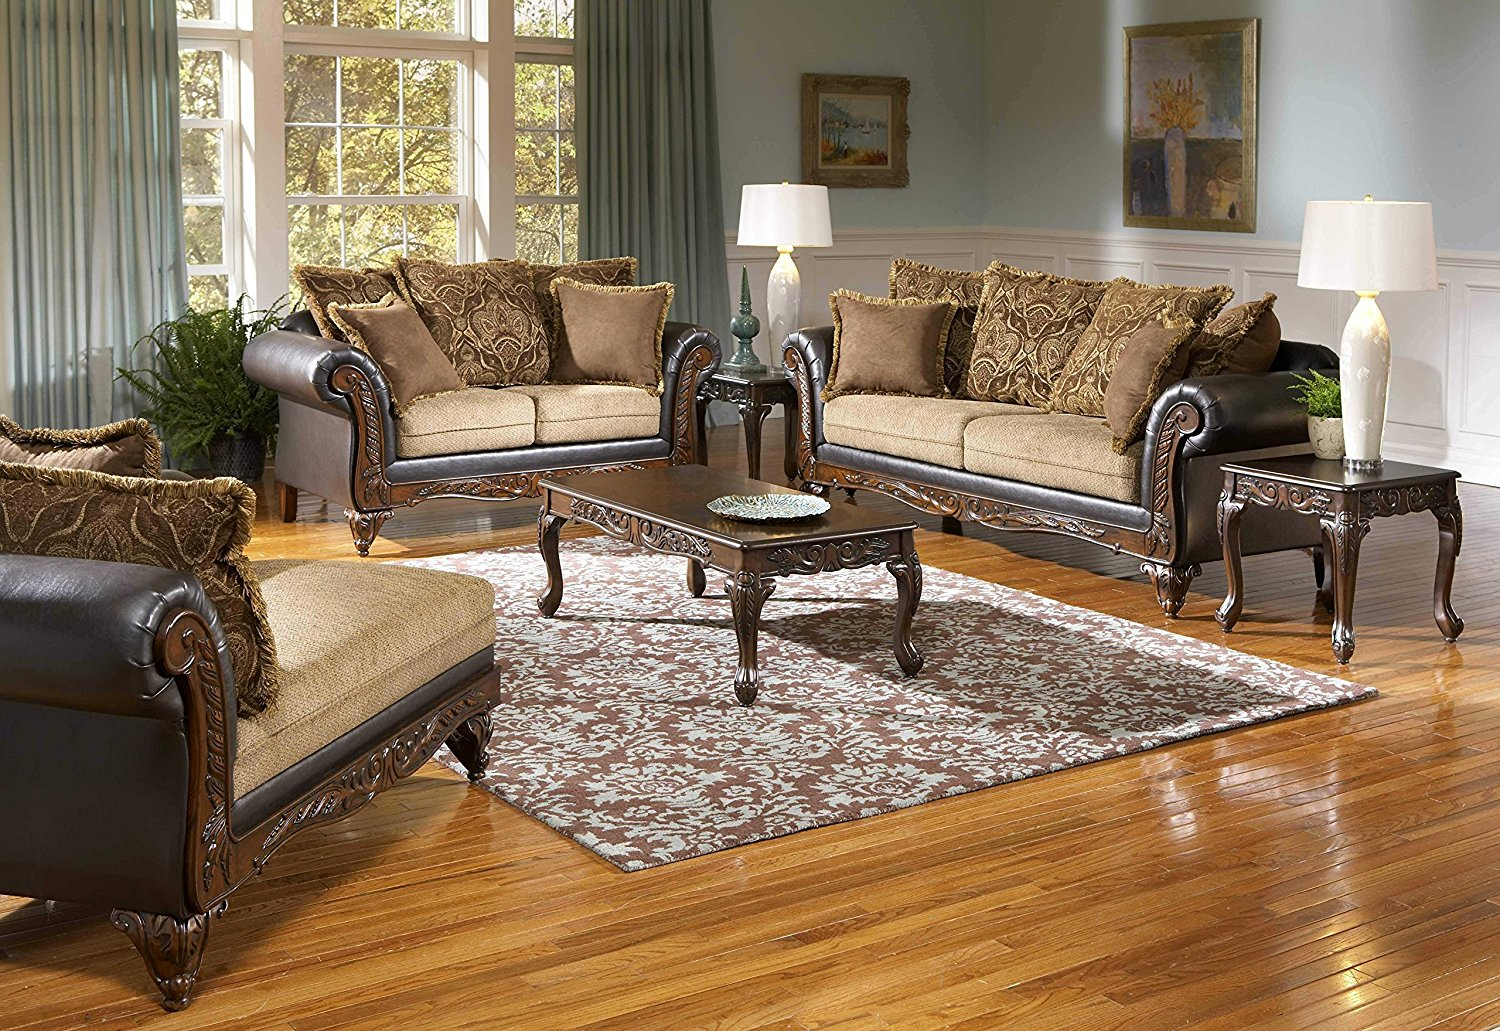 Roundhill Furniture San Antonio Traditional 2-Tone Sofa & Loveseat, Chocolate/Brown